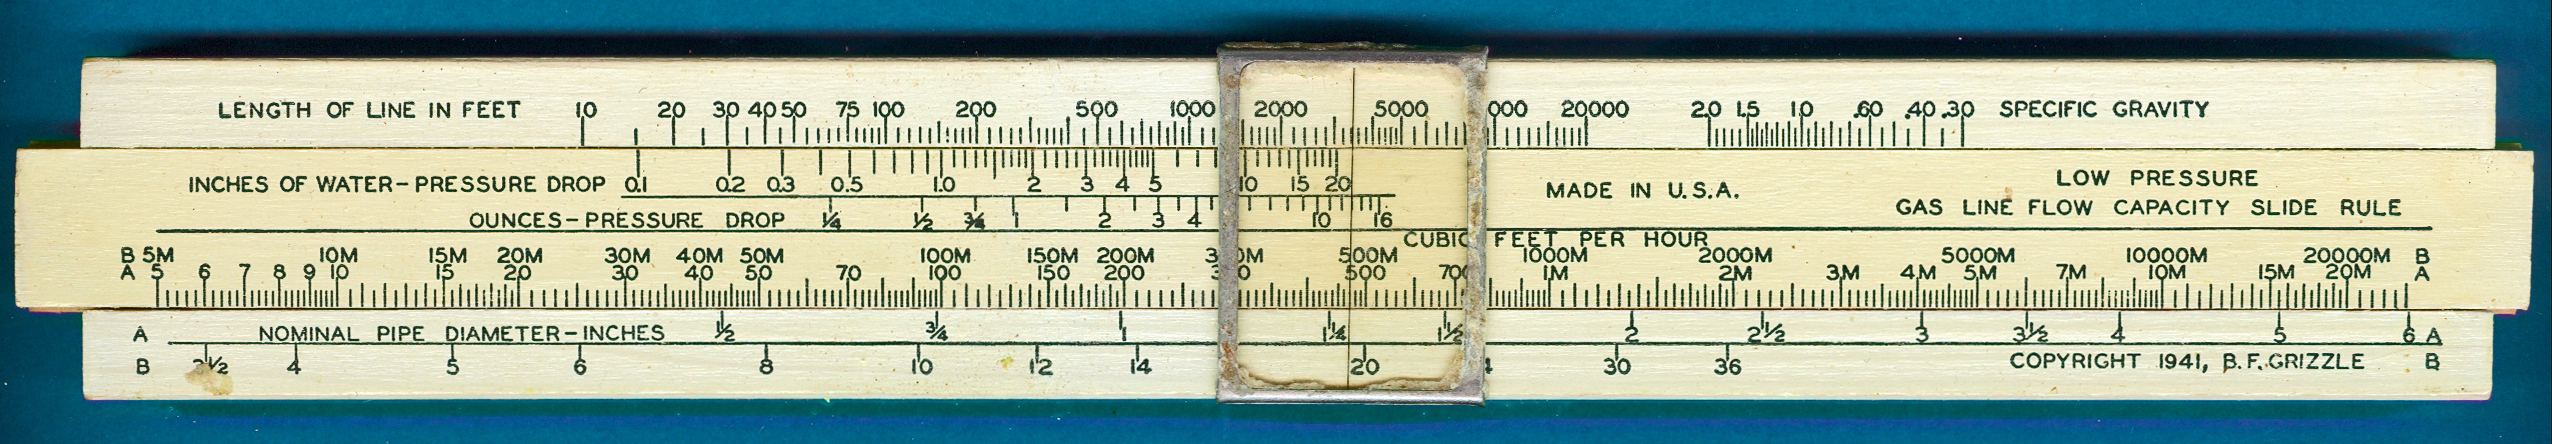 Lawrence Engineering Services B.F. Grizzle Gas Low Pressure Line Flow Capacity Slide Rule